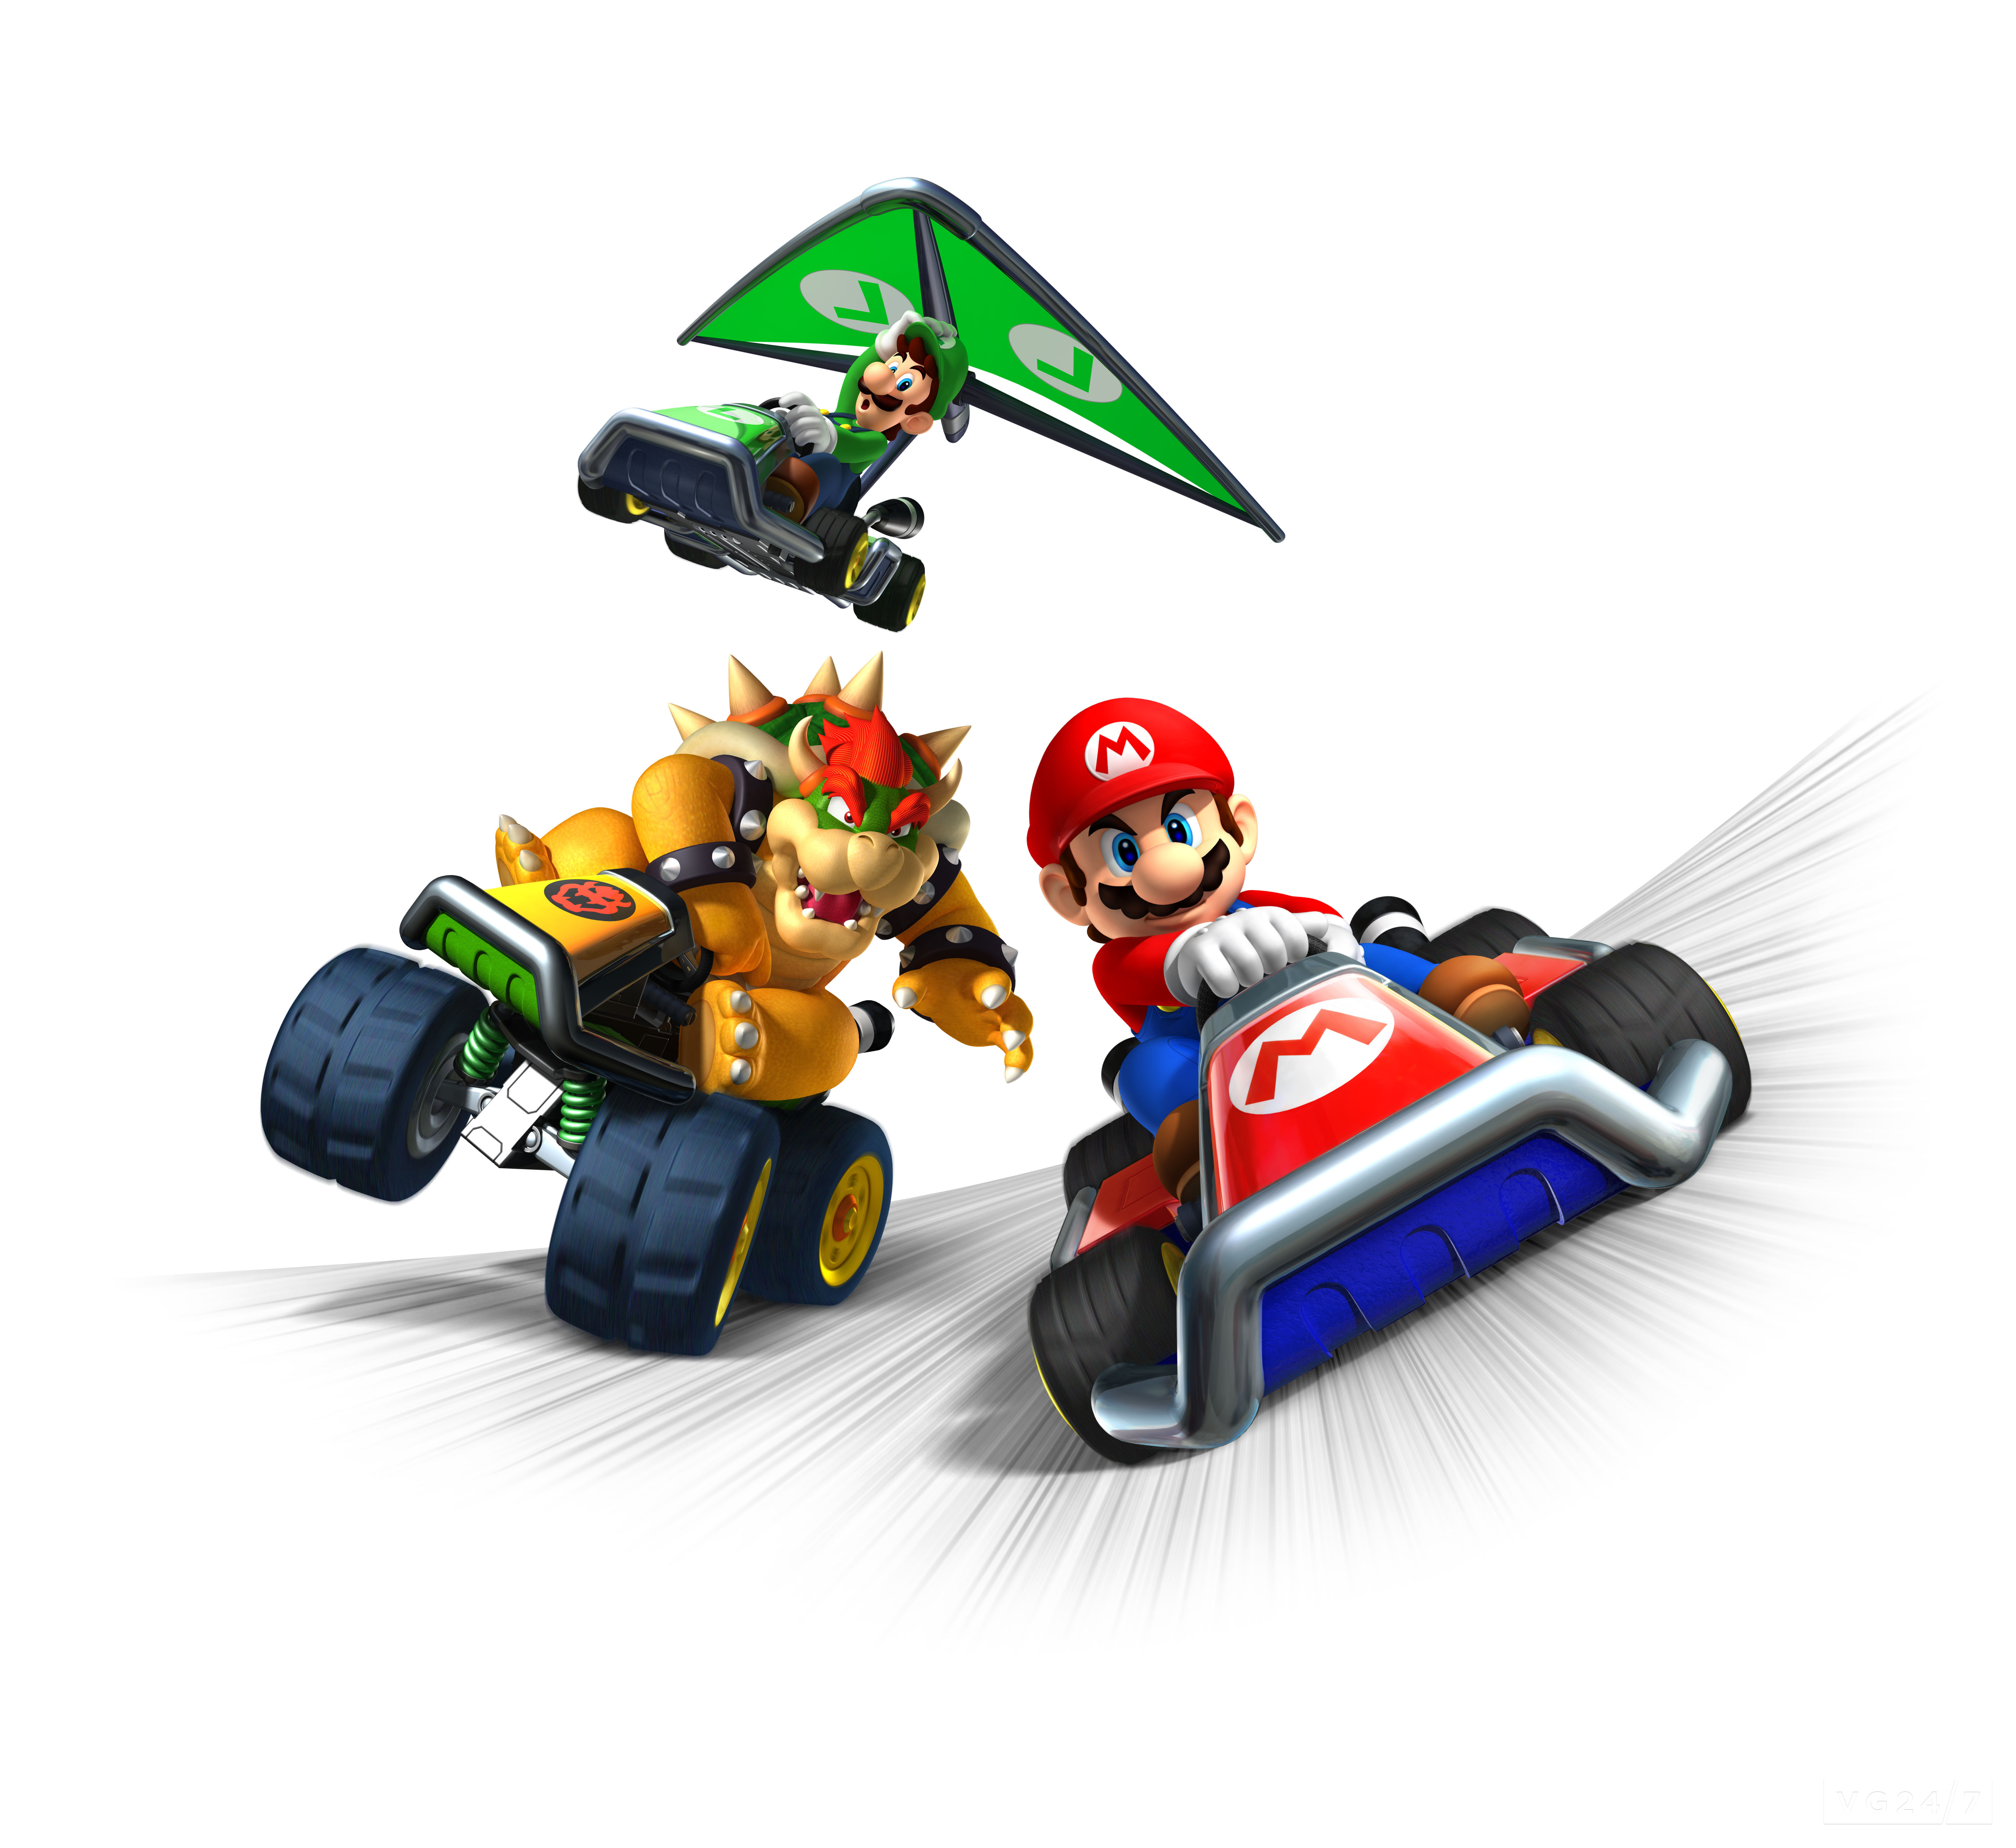 Quick Shots Mario Kart 7 Renders Are Rather Adorable Vg247